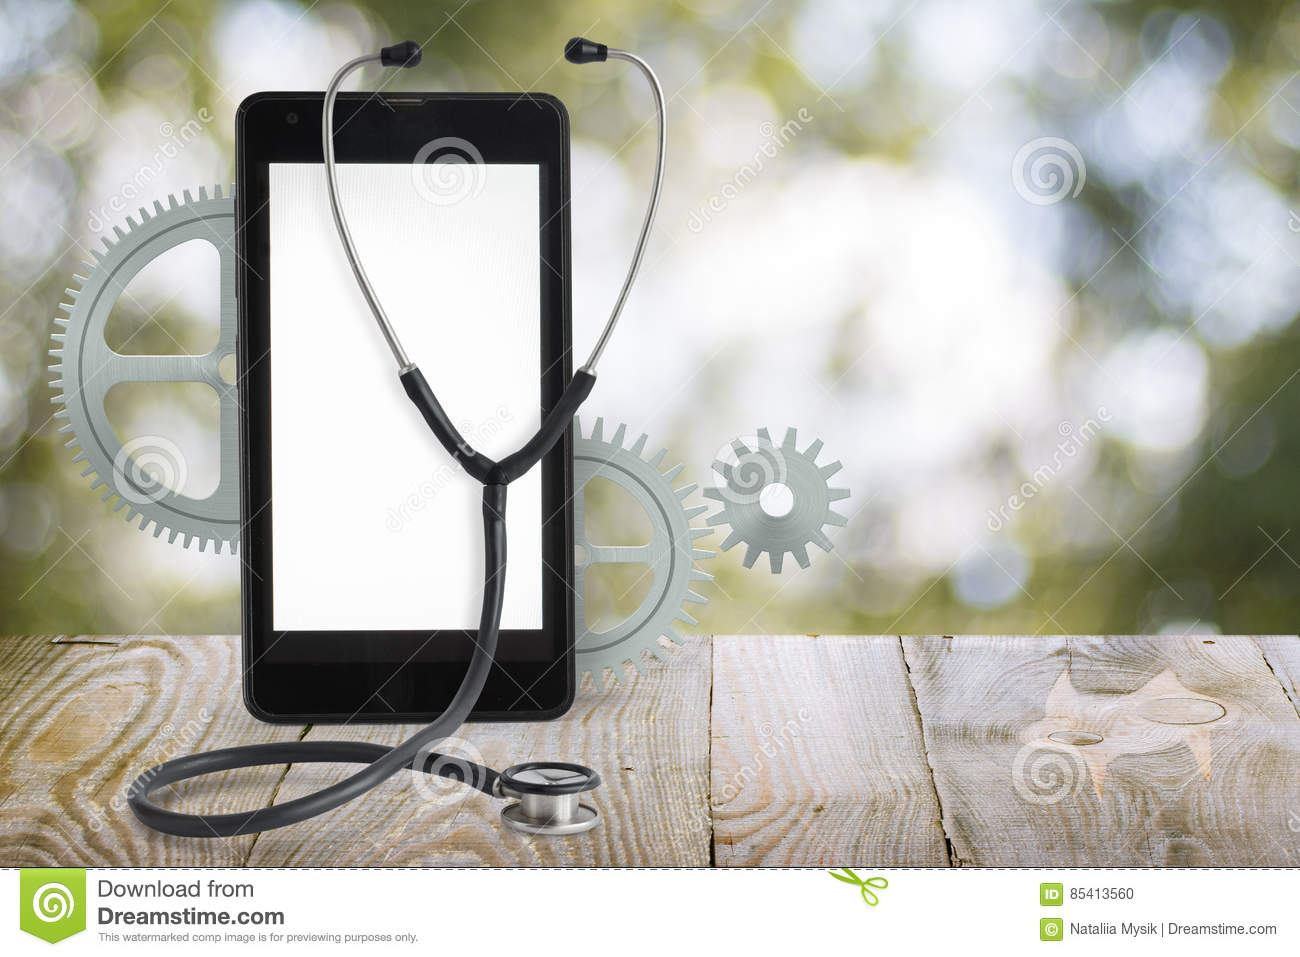 19 816 Mobile Repair Photos Free Royalty Free Stock Photos From Dreamstime